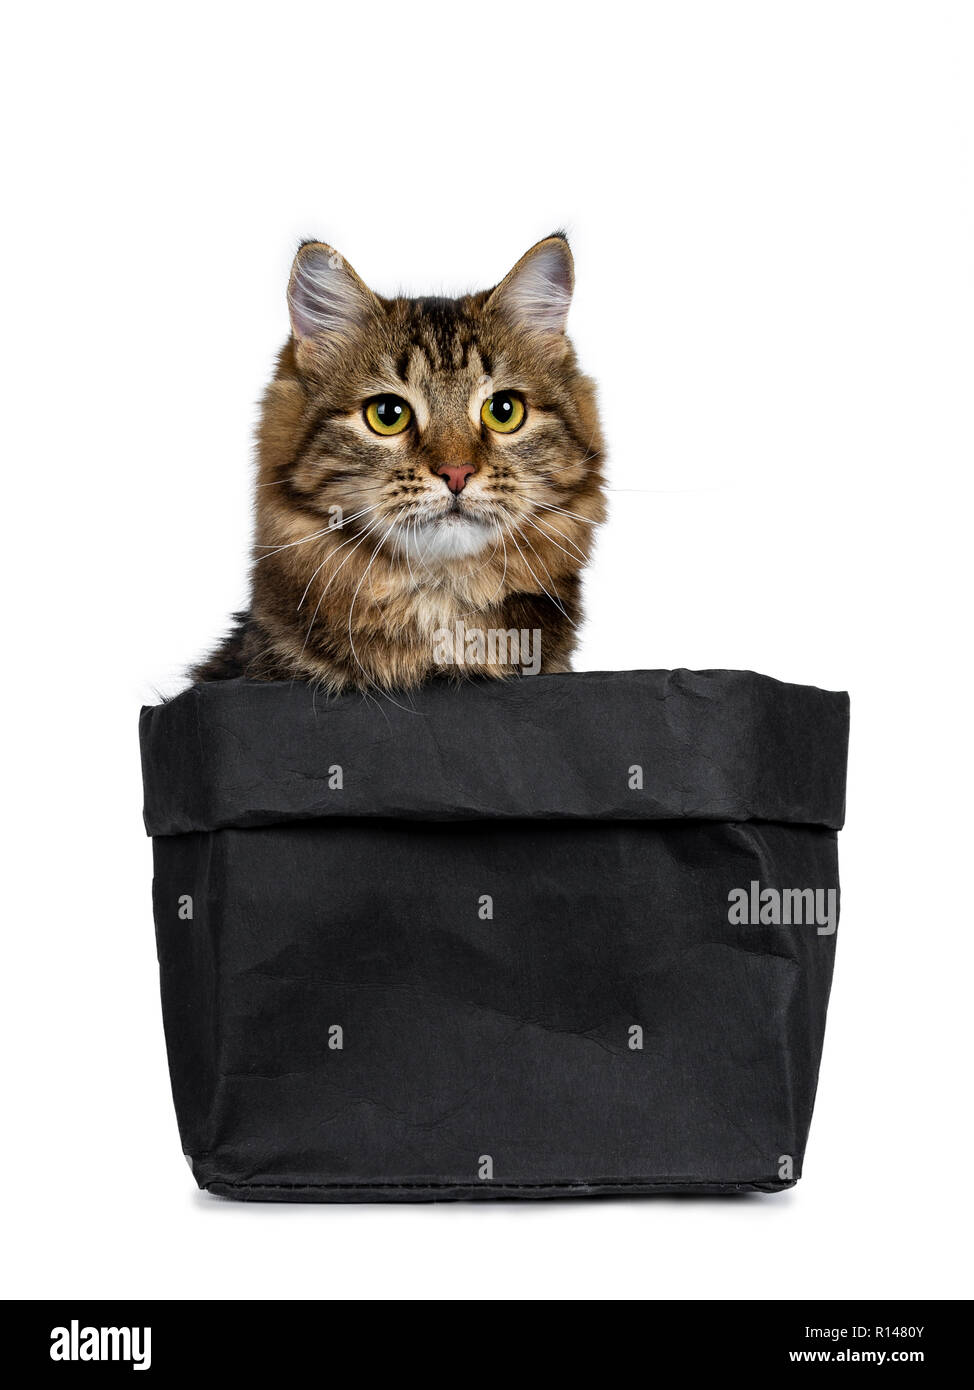 Adorable black tabby Siberian cat kitten sitting in black paper bag, looking straight ahead beside camera. Isolated on white background. - Stock Image